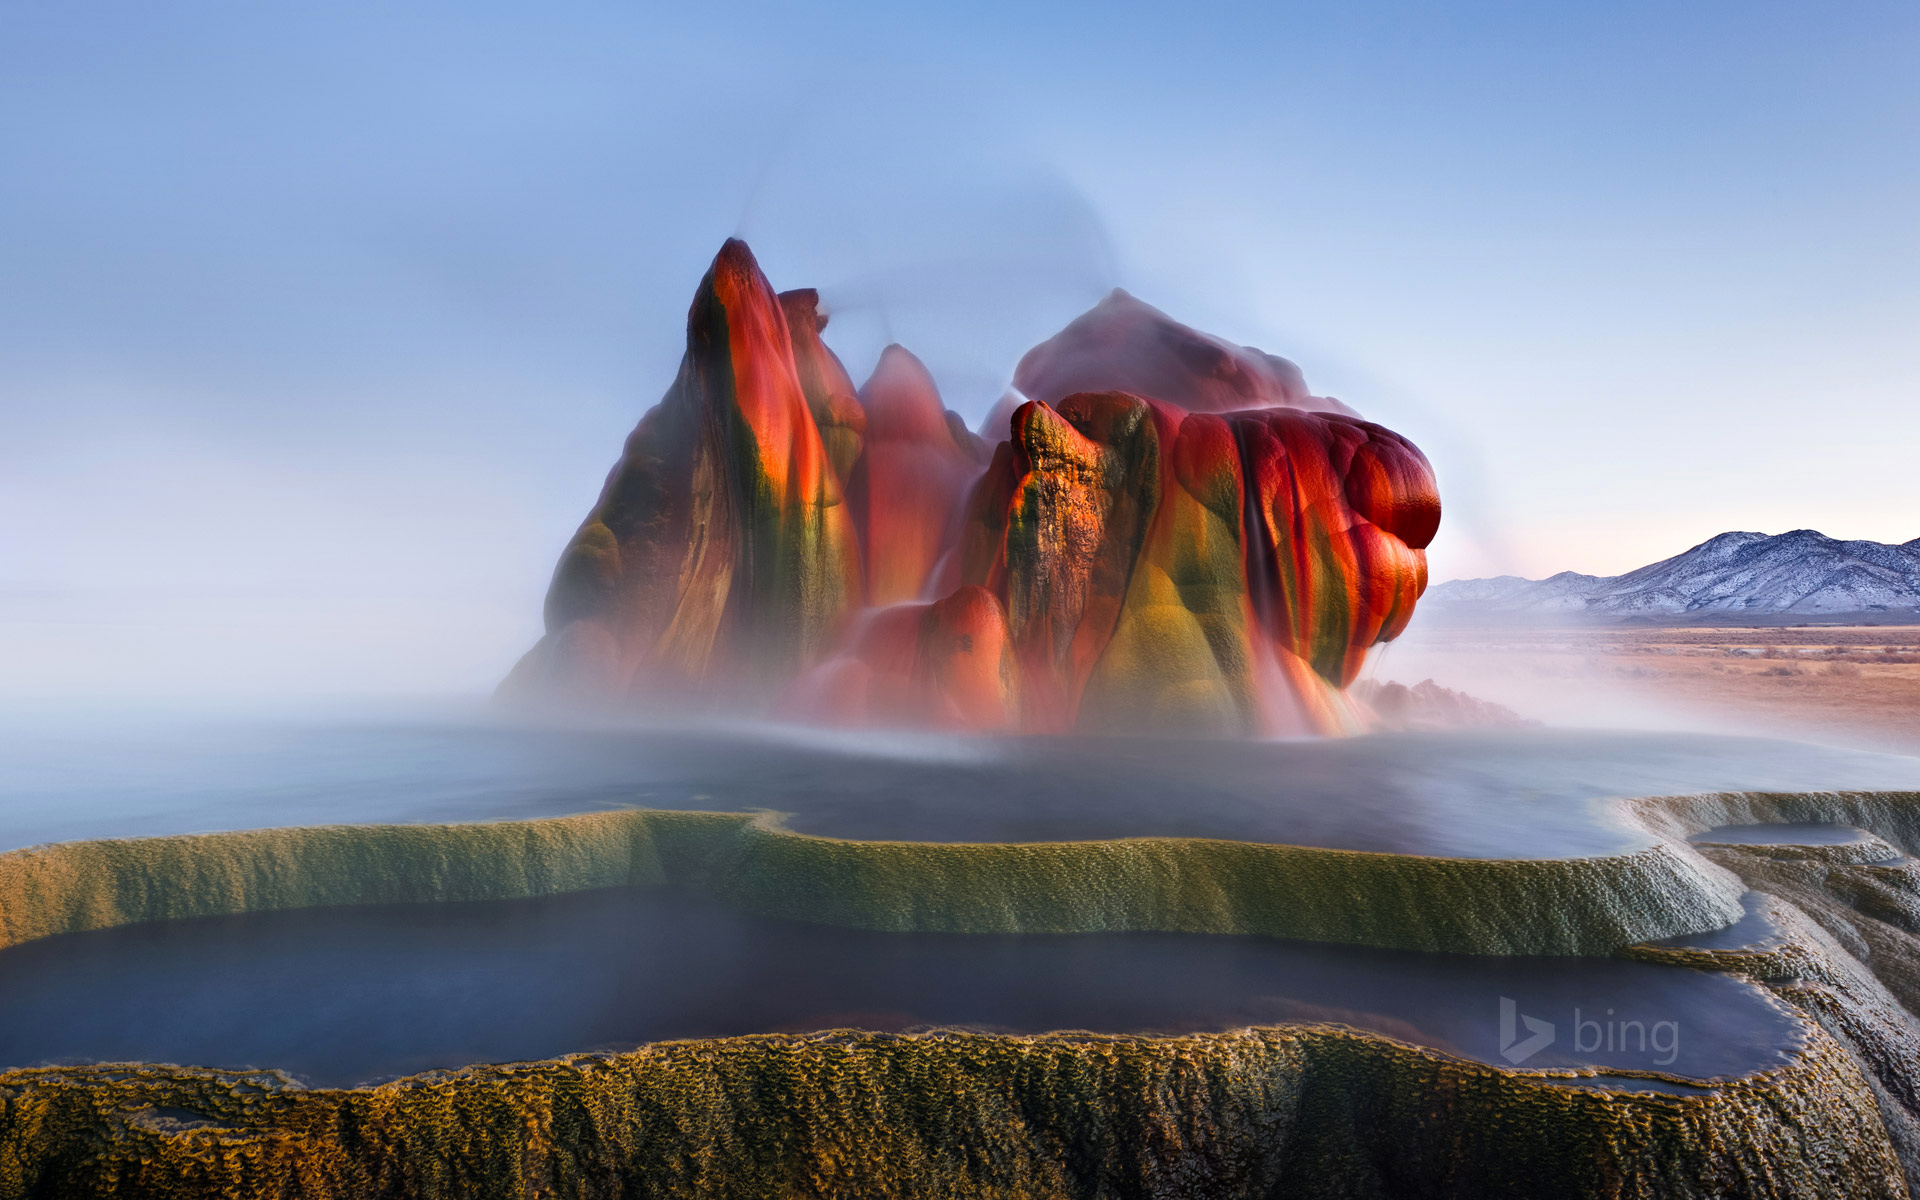 Fly Geyser Wallpapers and Background Images   stmednet 1920x1200